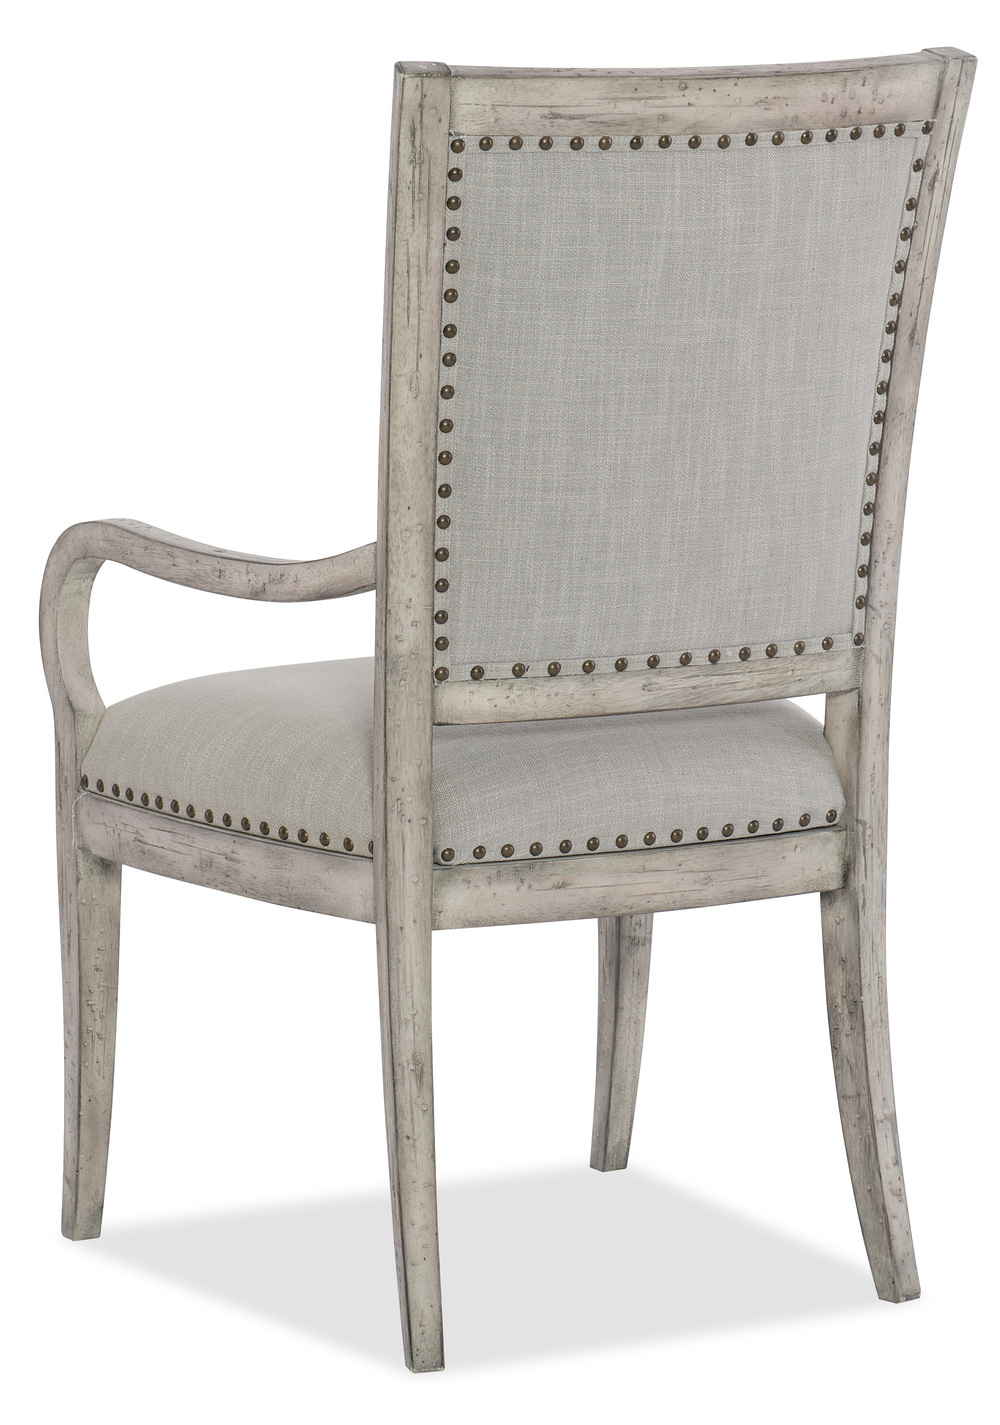 HOOKER FURNITURE CO - Vitton Upholstered Arm Chair